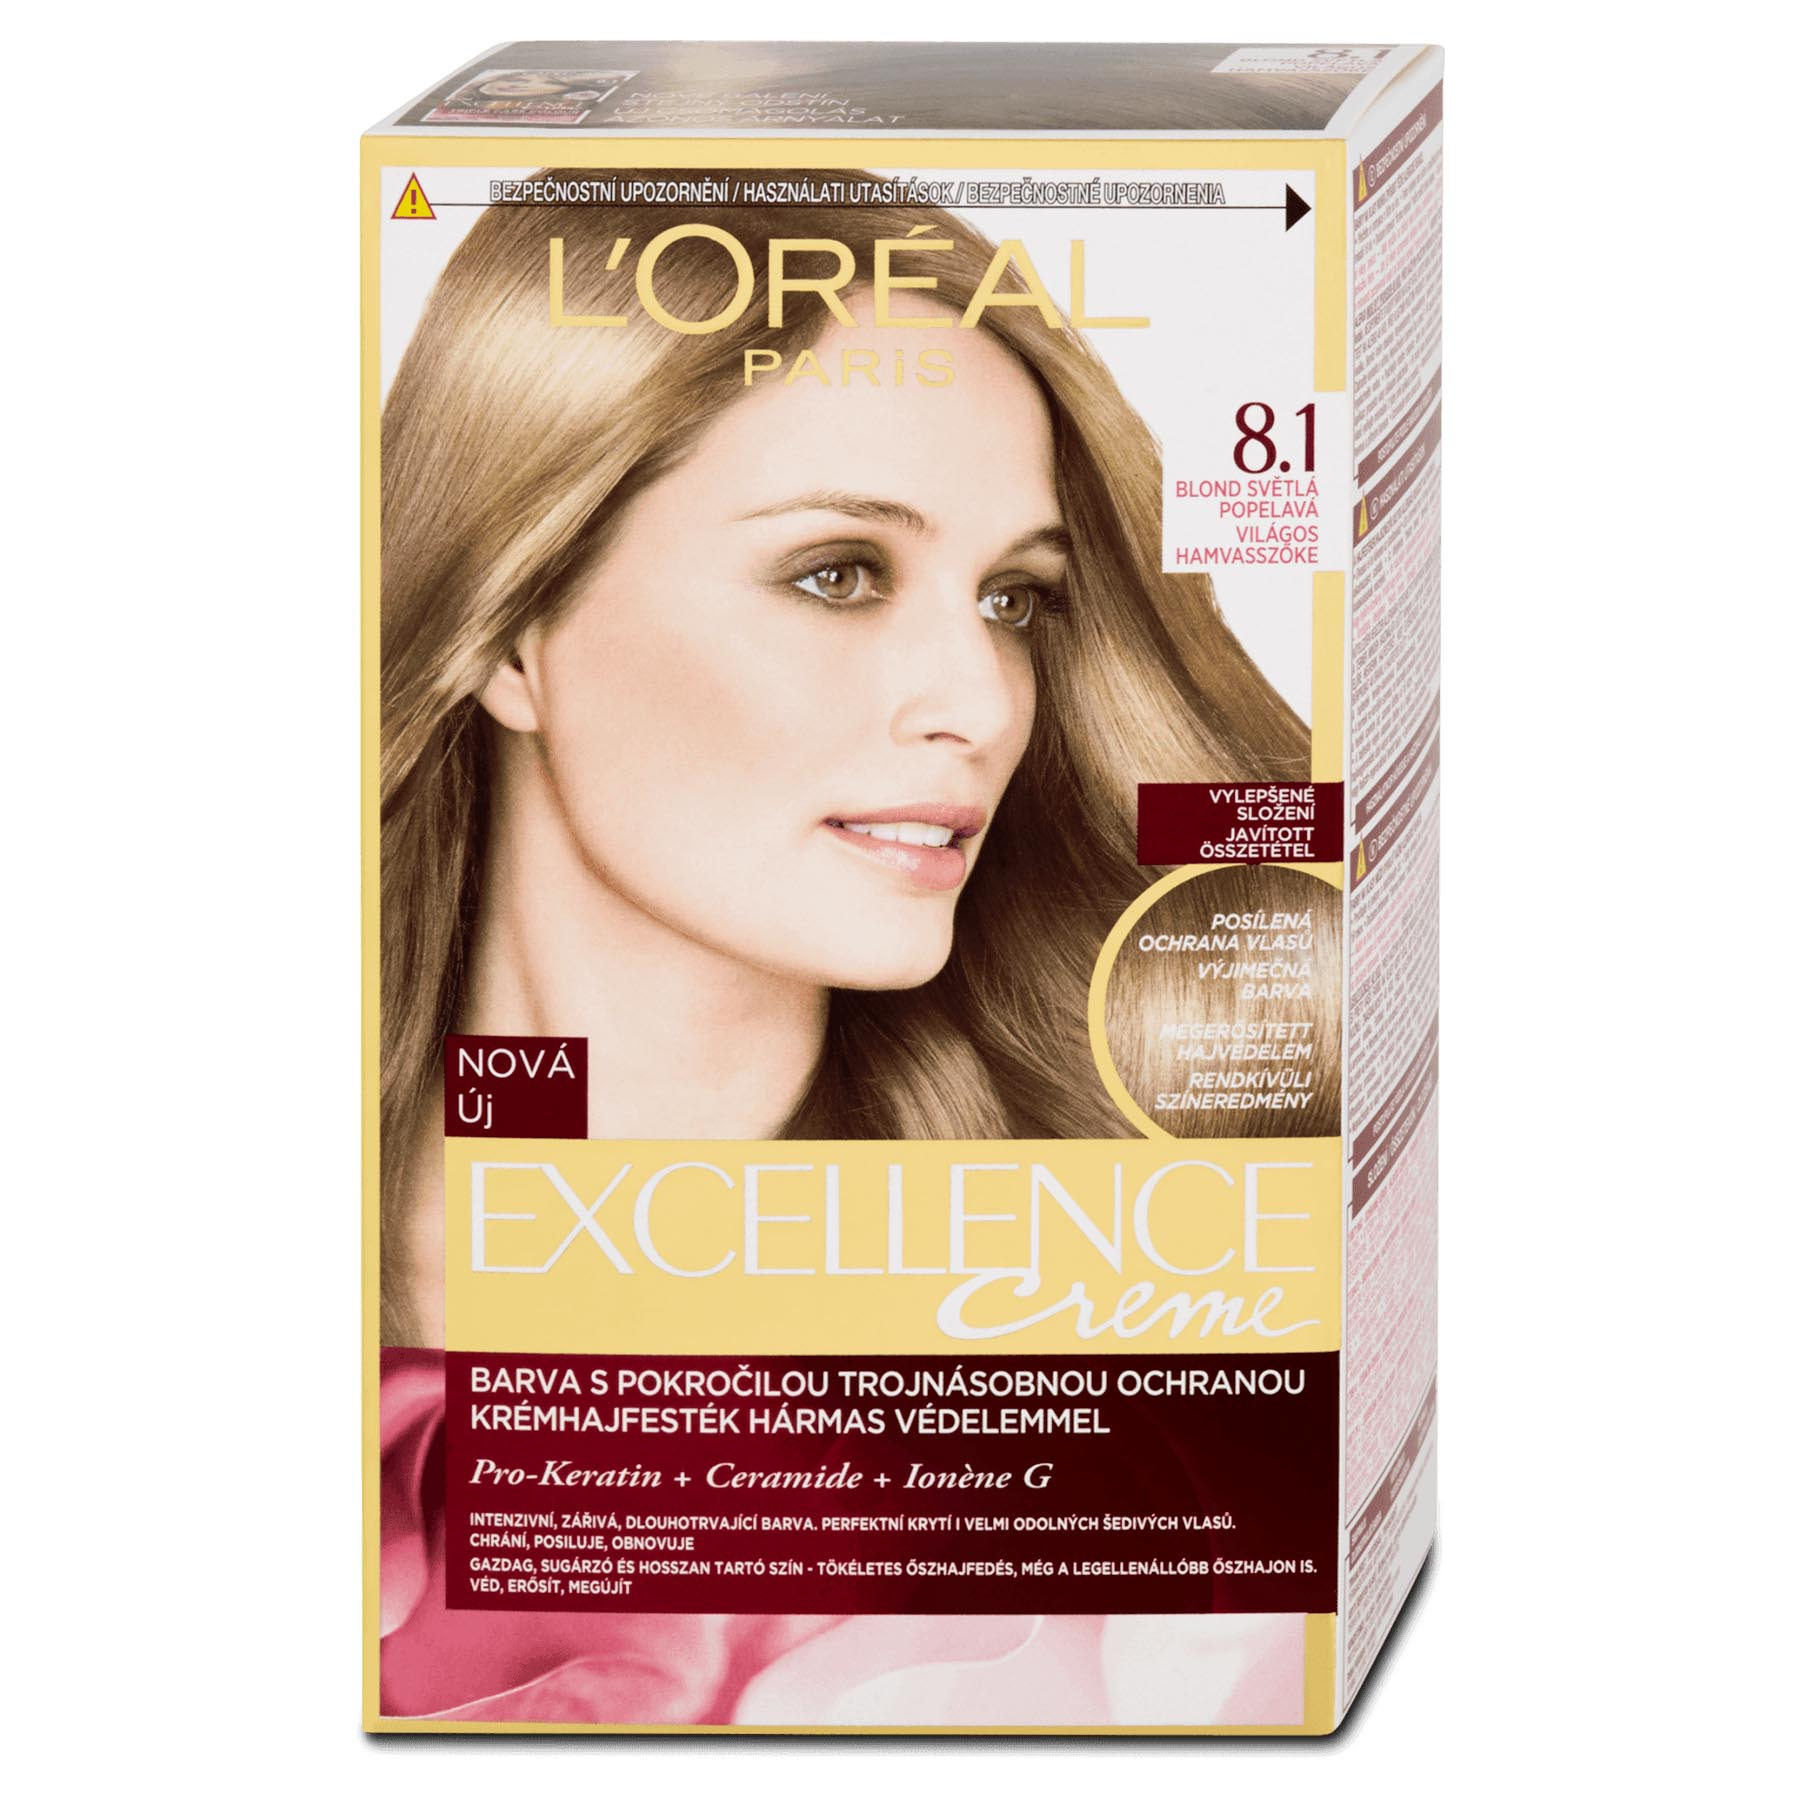 Loral Paris Excellence 81 Natural Ash Blonde Hair Dye Peppery Spot